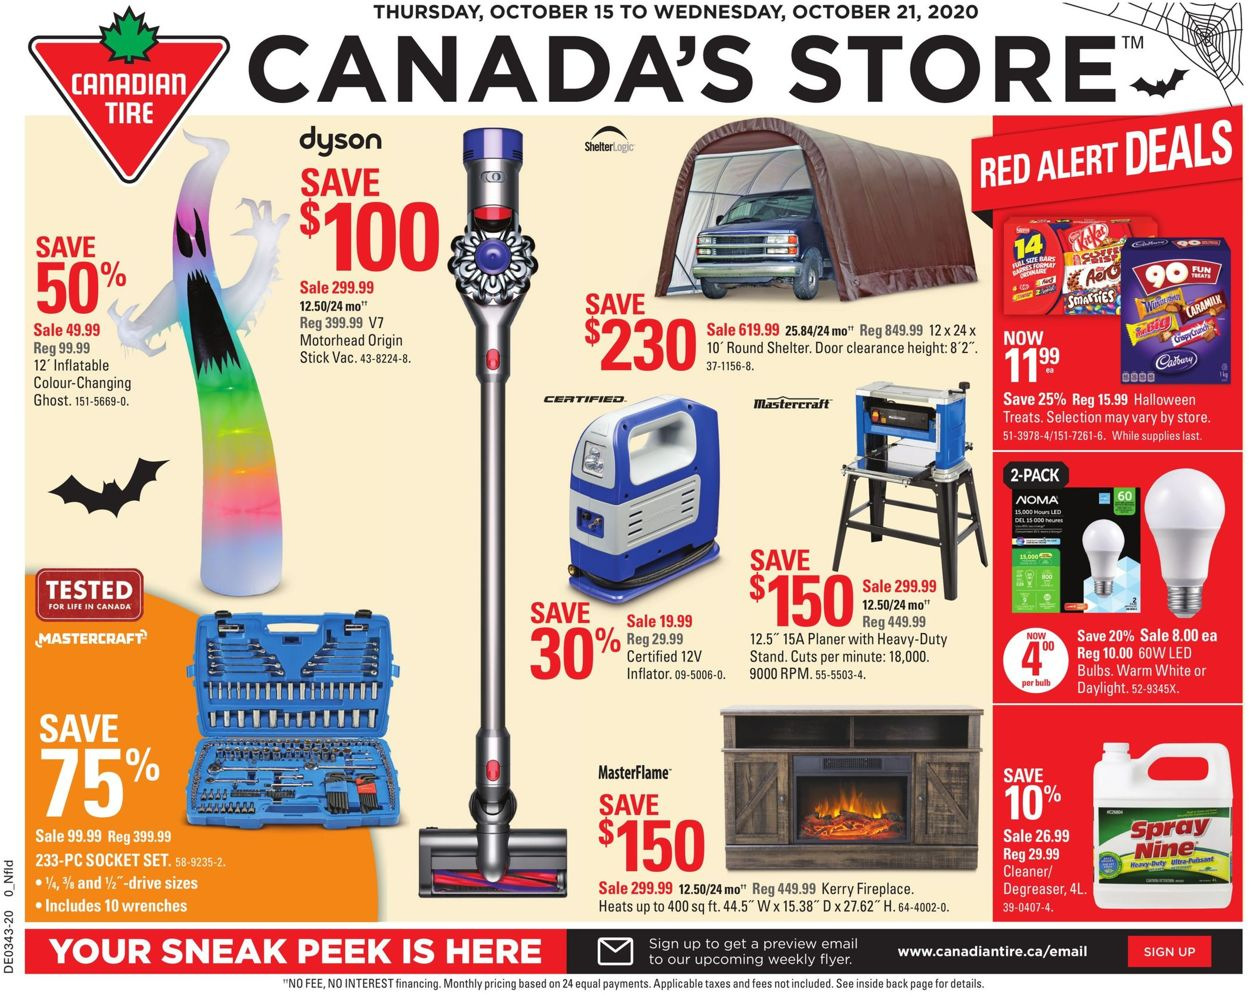 Canadian Tire Flyer - 10/15-10/21/2020